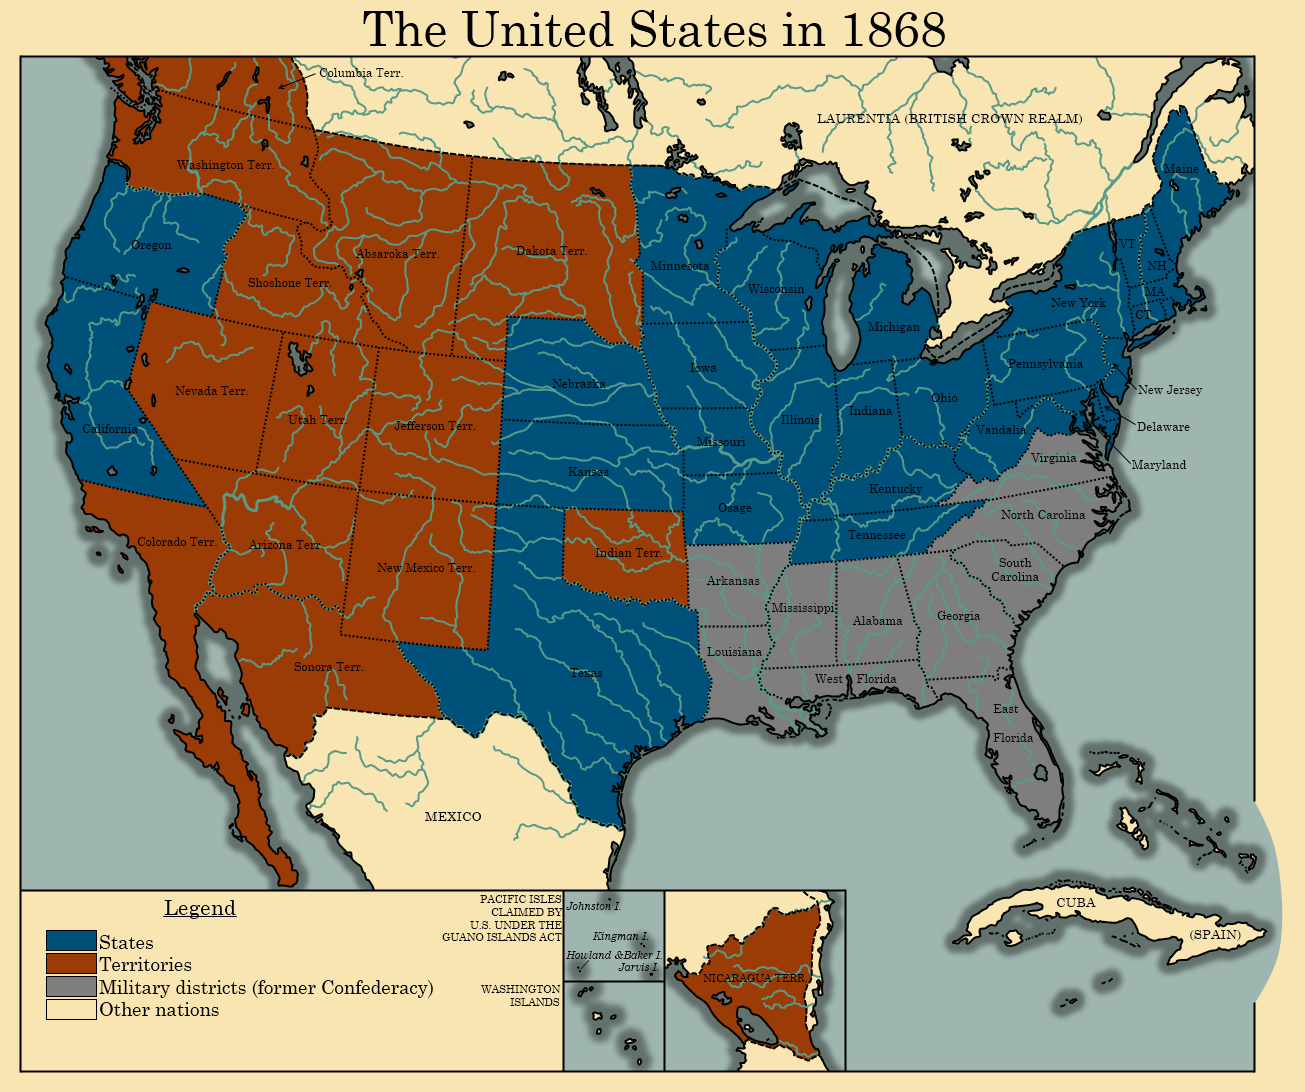 The United States in 1868 by TheAresProject on DeviantArt